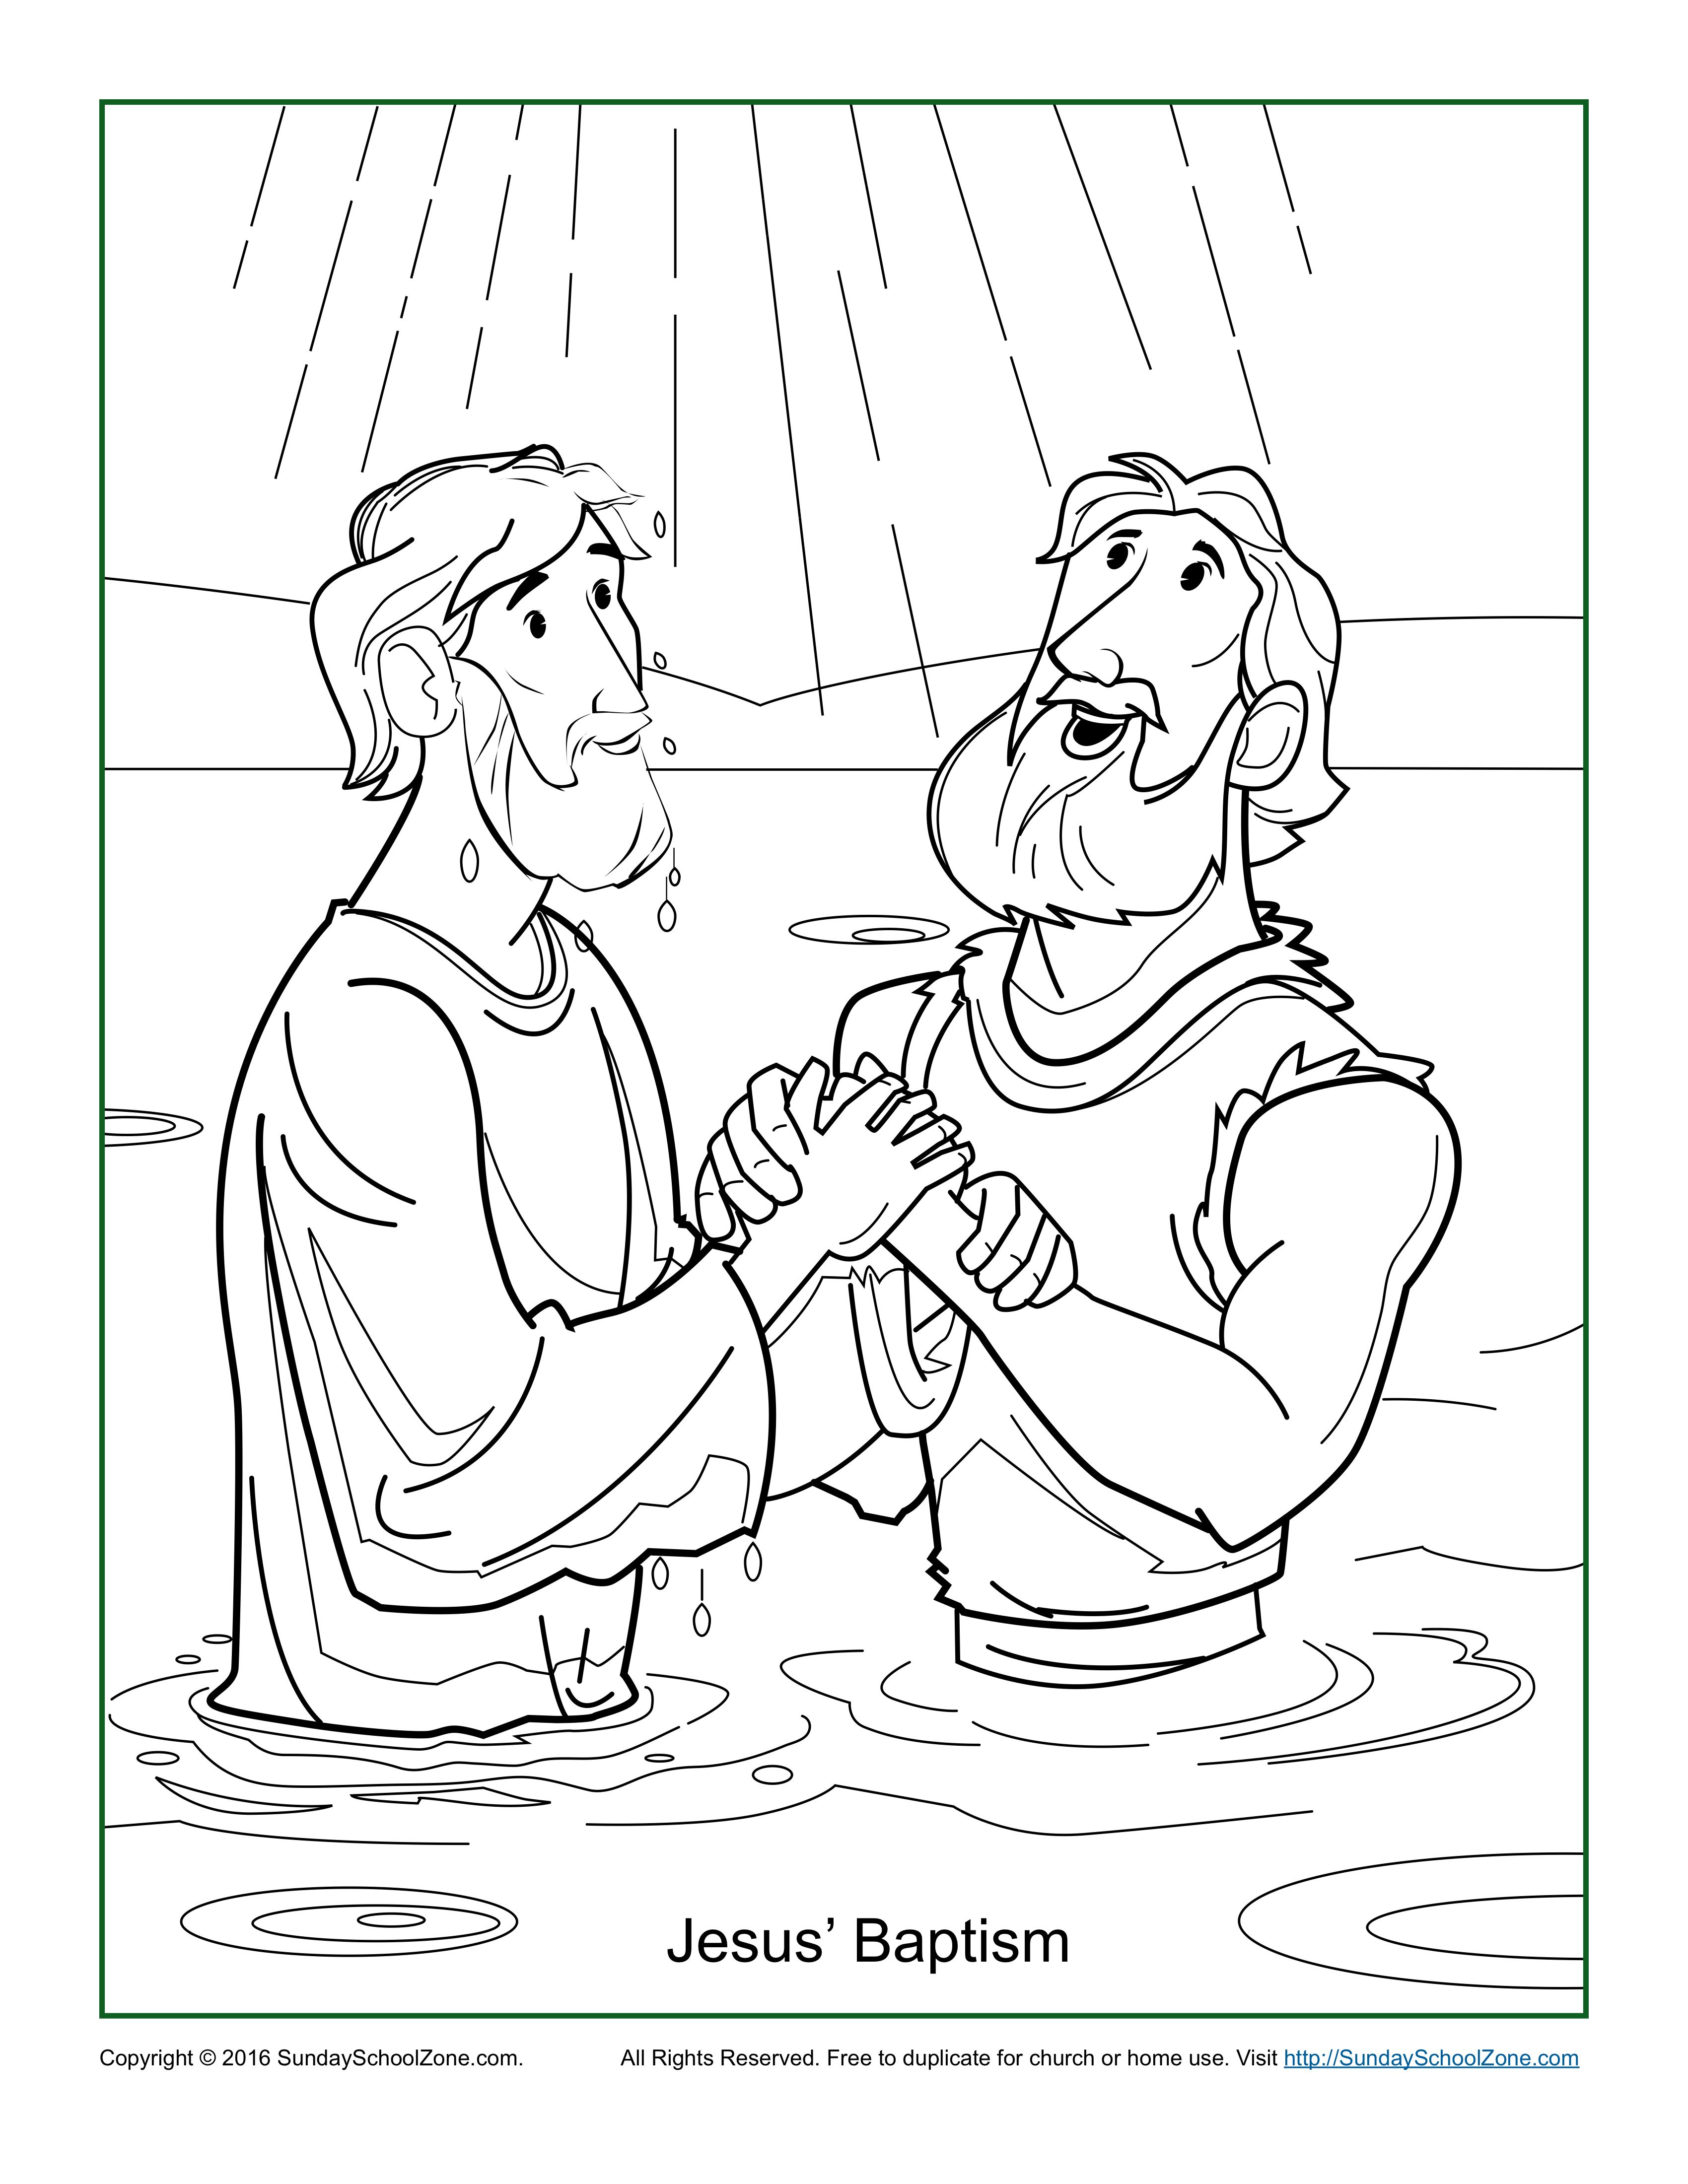 jesus baptism coloring page - Baptism Coloring Pages Printables